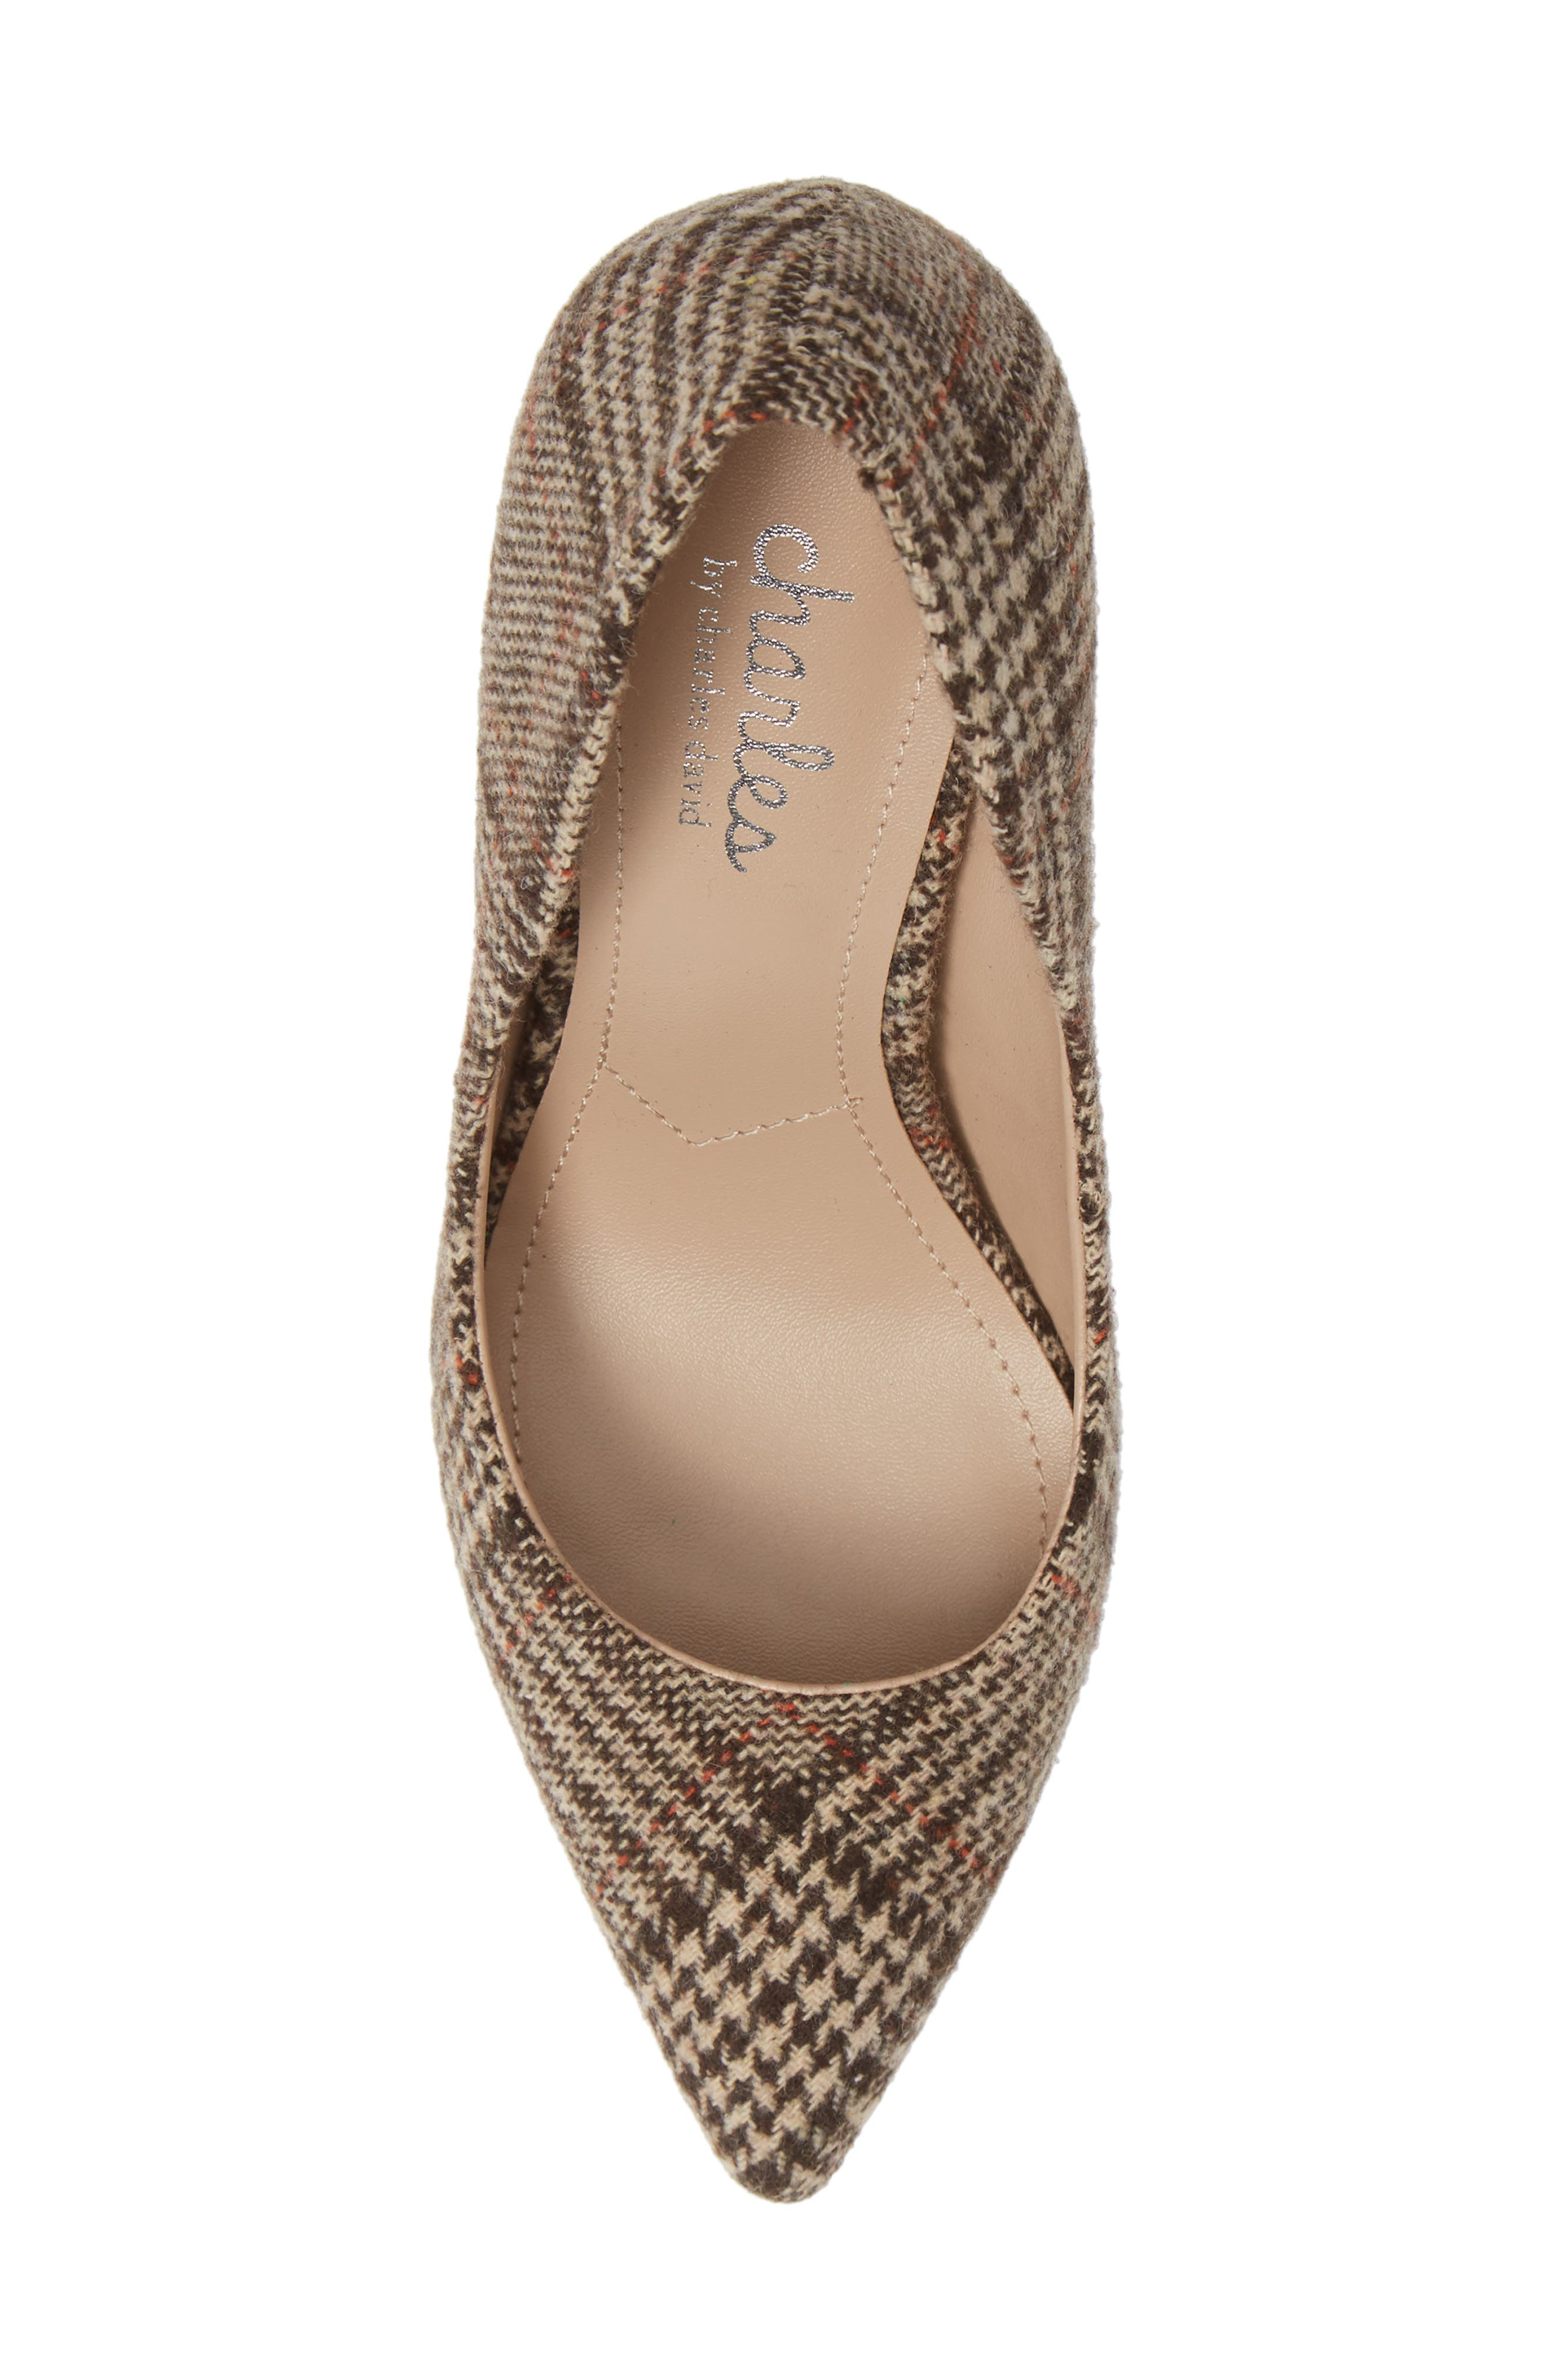 CHARLES BY CHARLES DAVID, Maxx Pointy Toe Pump, Alternate thumbnail 5, color, BROWN PLAID FABRIC